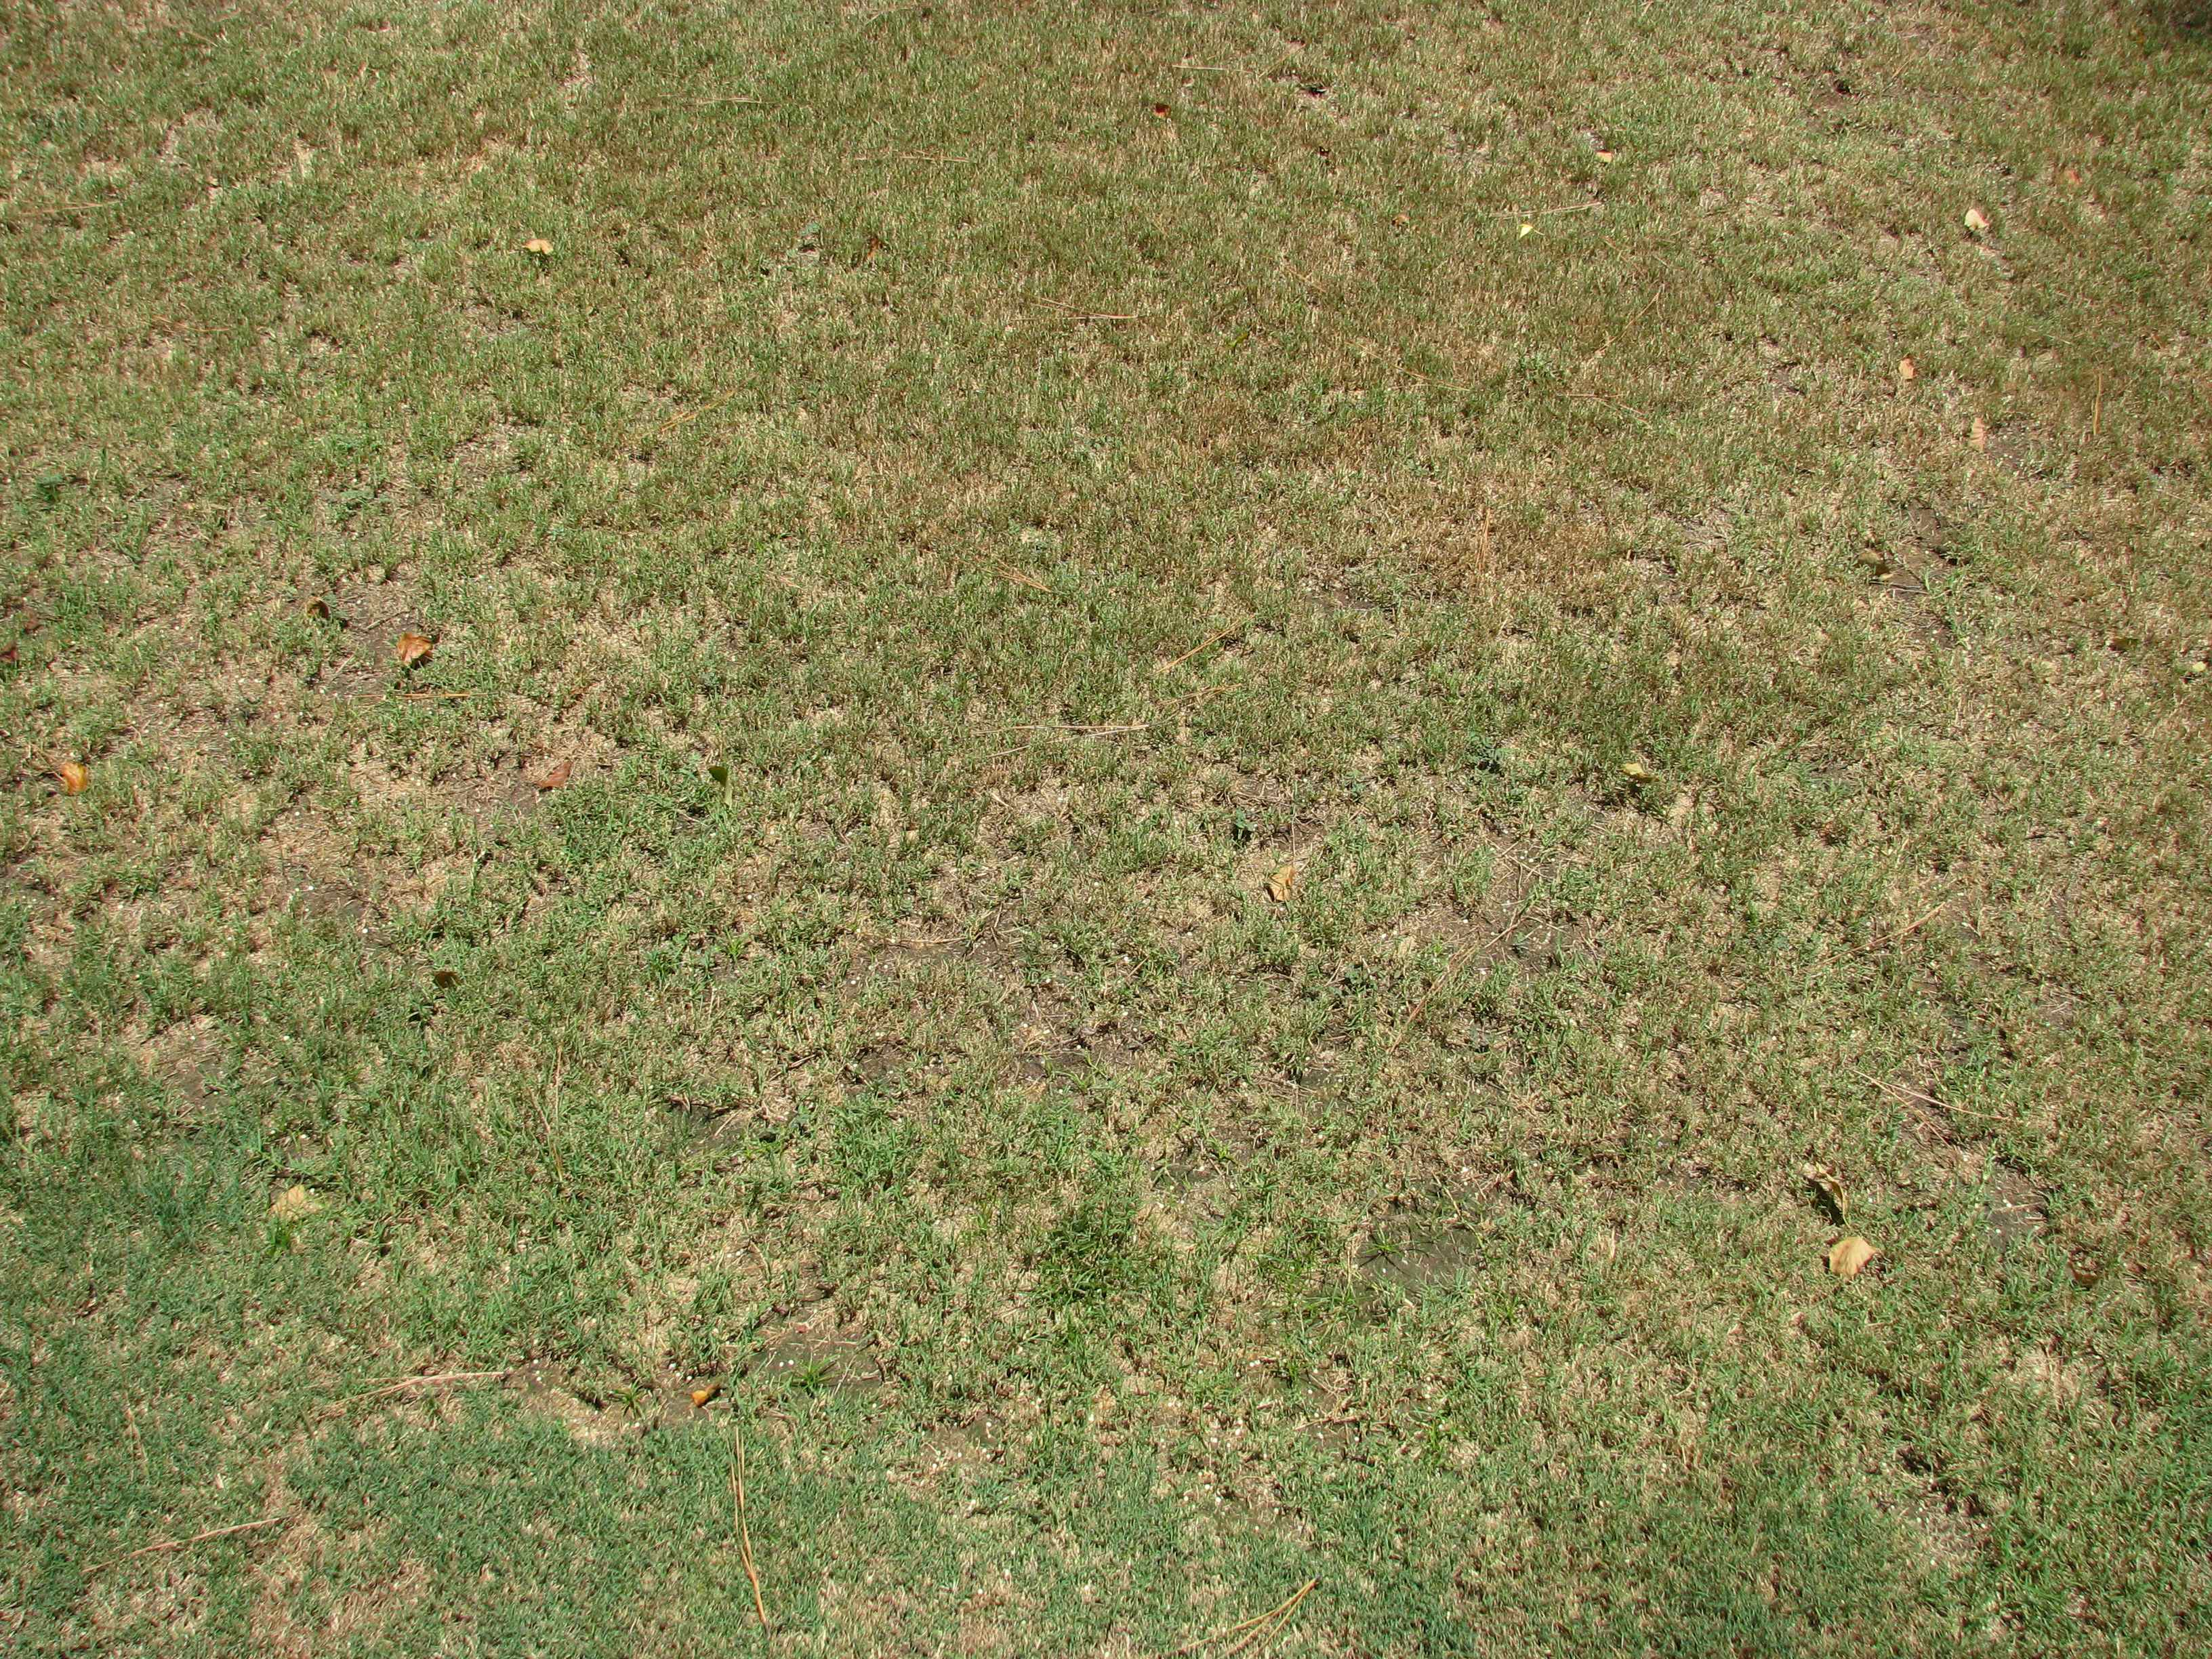 Sedge and Nutgrass Experiment - No Perceptible Change in the